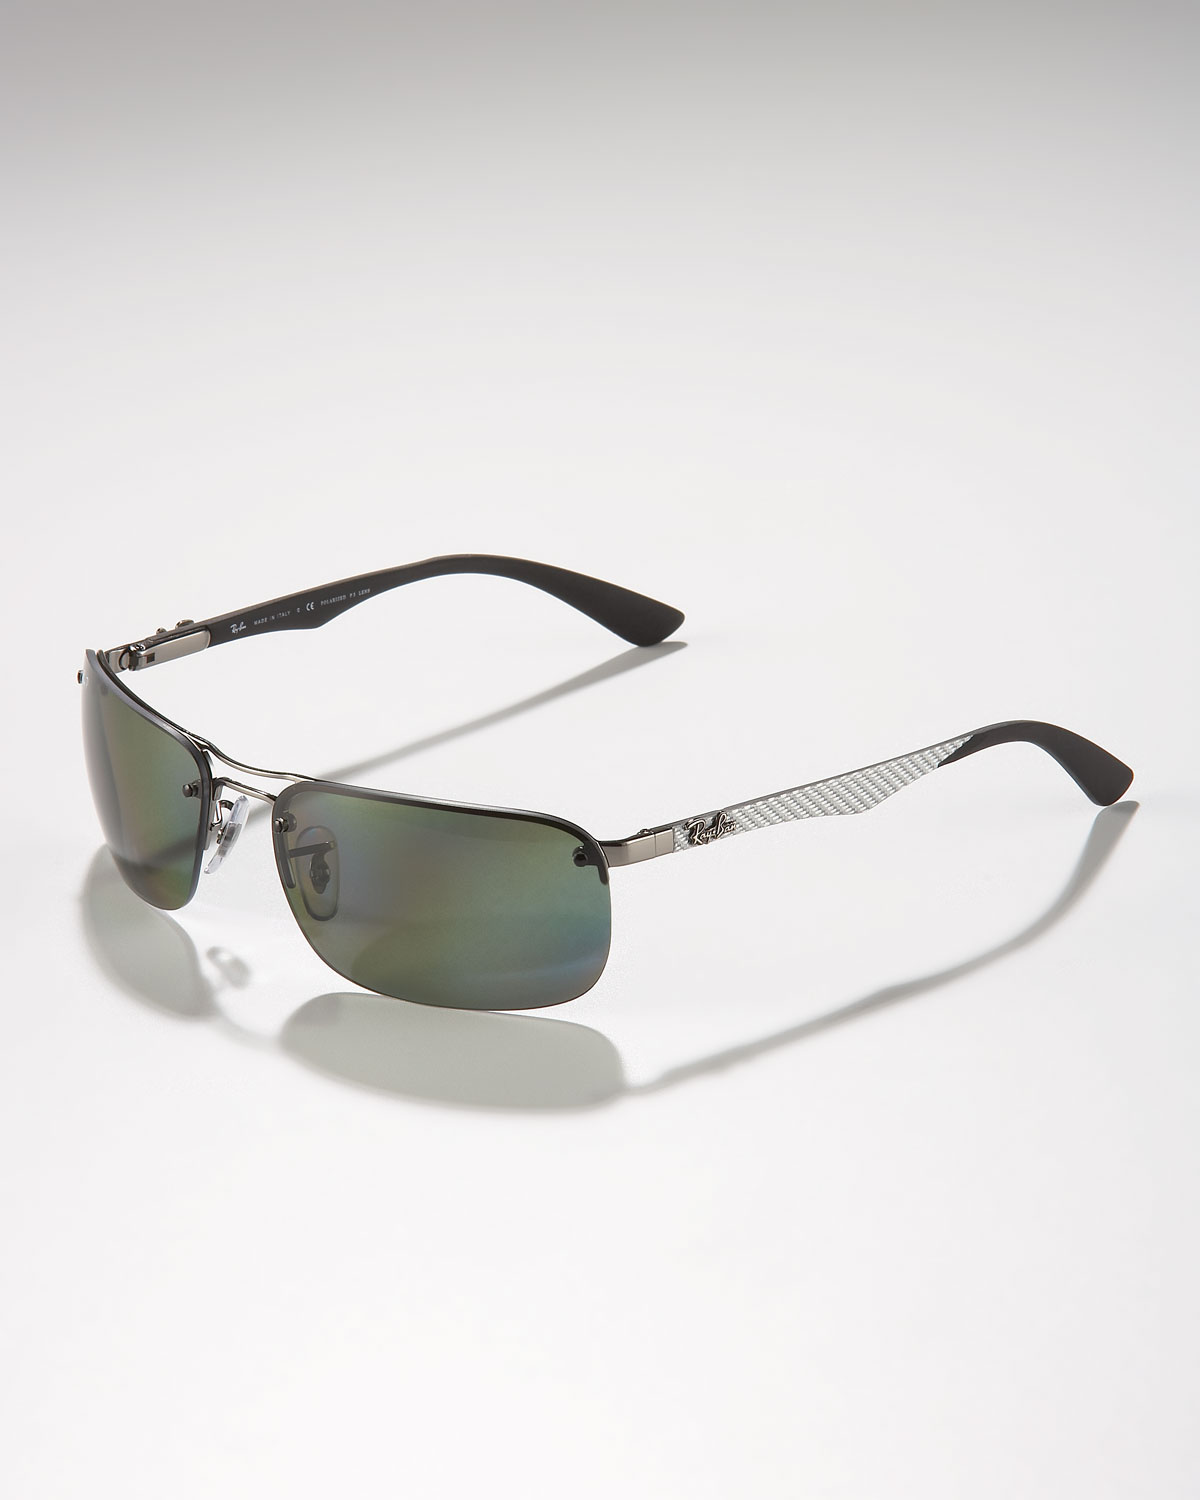 b9bdef64b5e ... coupon lyst ray ban polarized tech sunglasses in gray for men 5e5c8  11bf1 ...